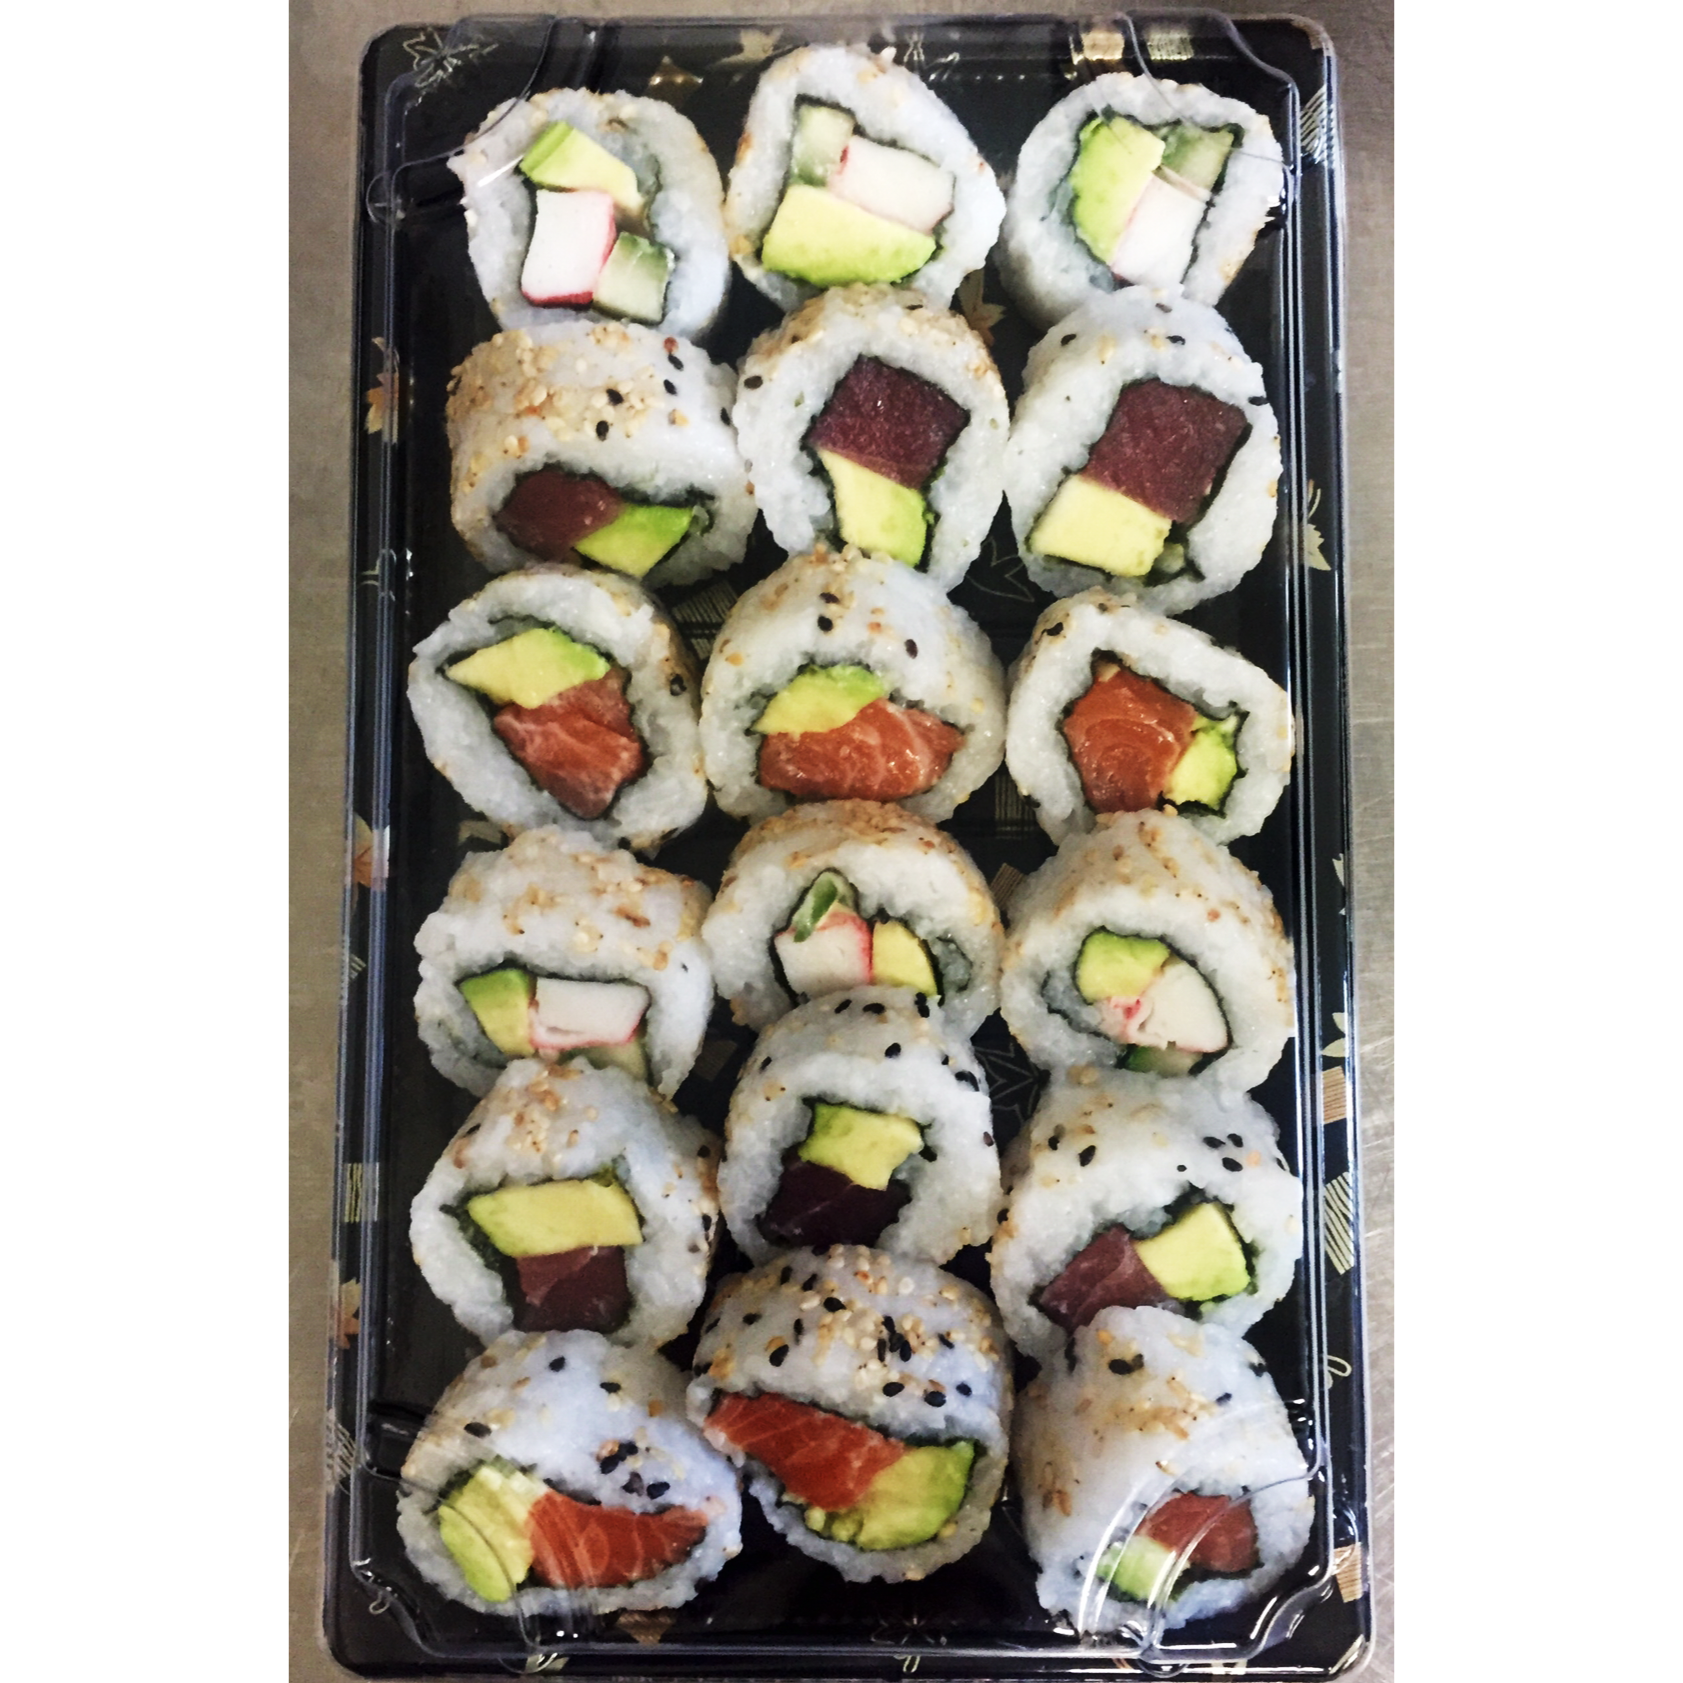 The Uramaki Box - £14   Includes a mix of 18 inside out rolls including california rolls, tuna & avocado and salmon & avocado